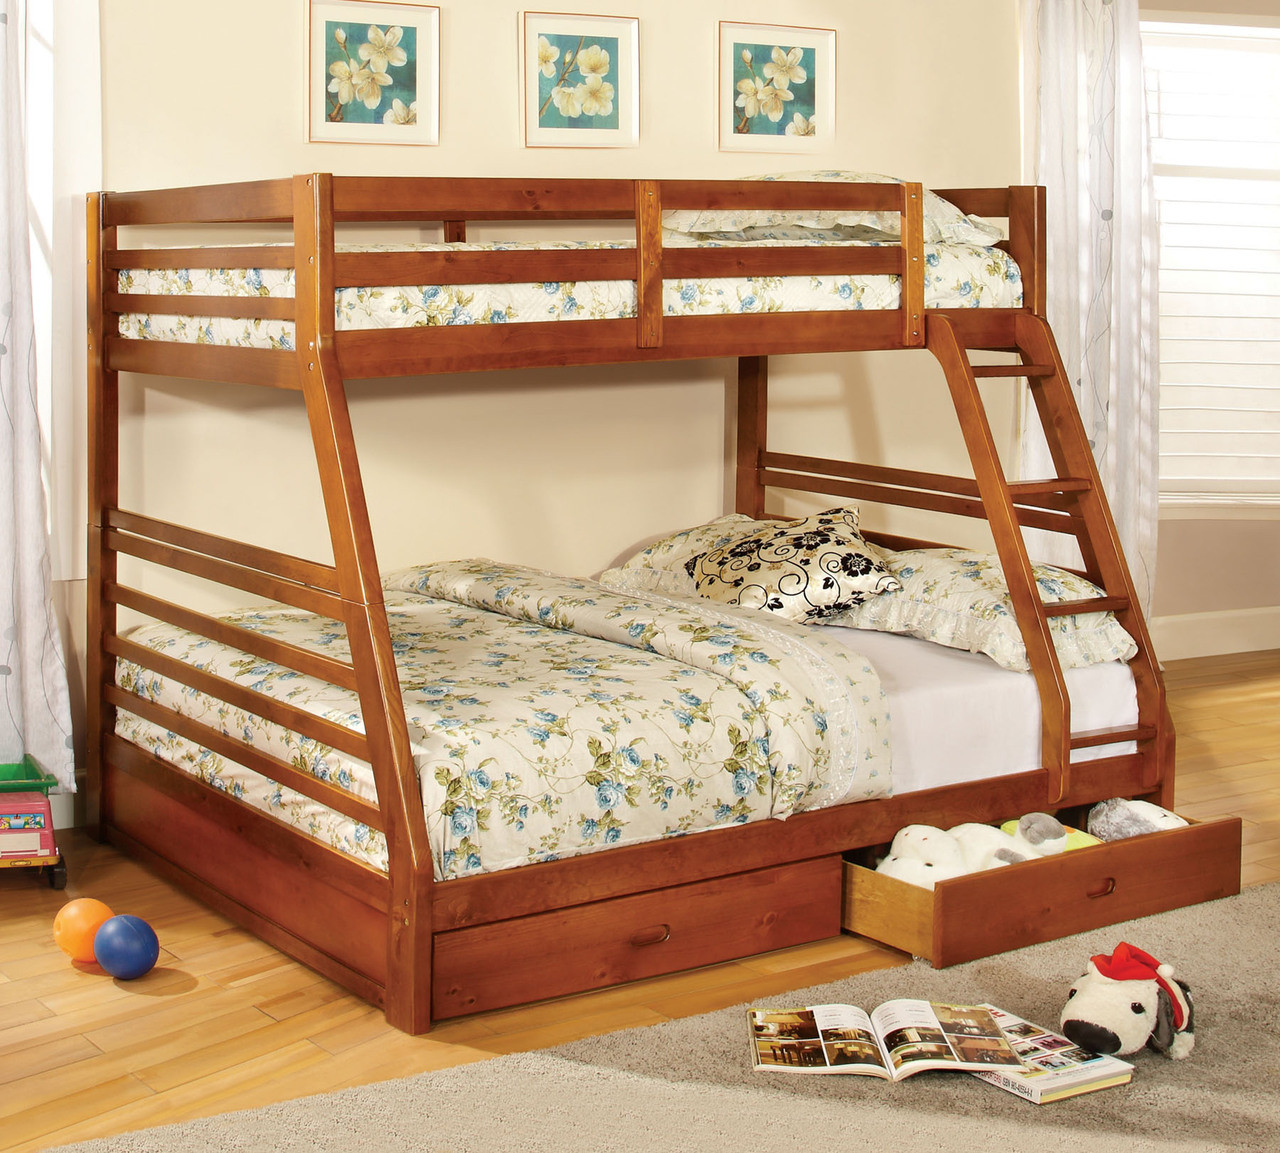 Buccari Twin Full Bunk Bed With Drawers In White Gray